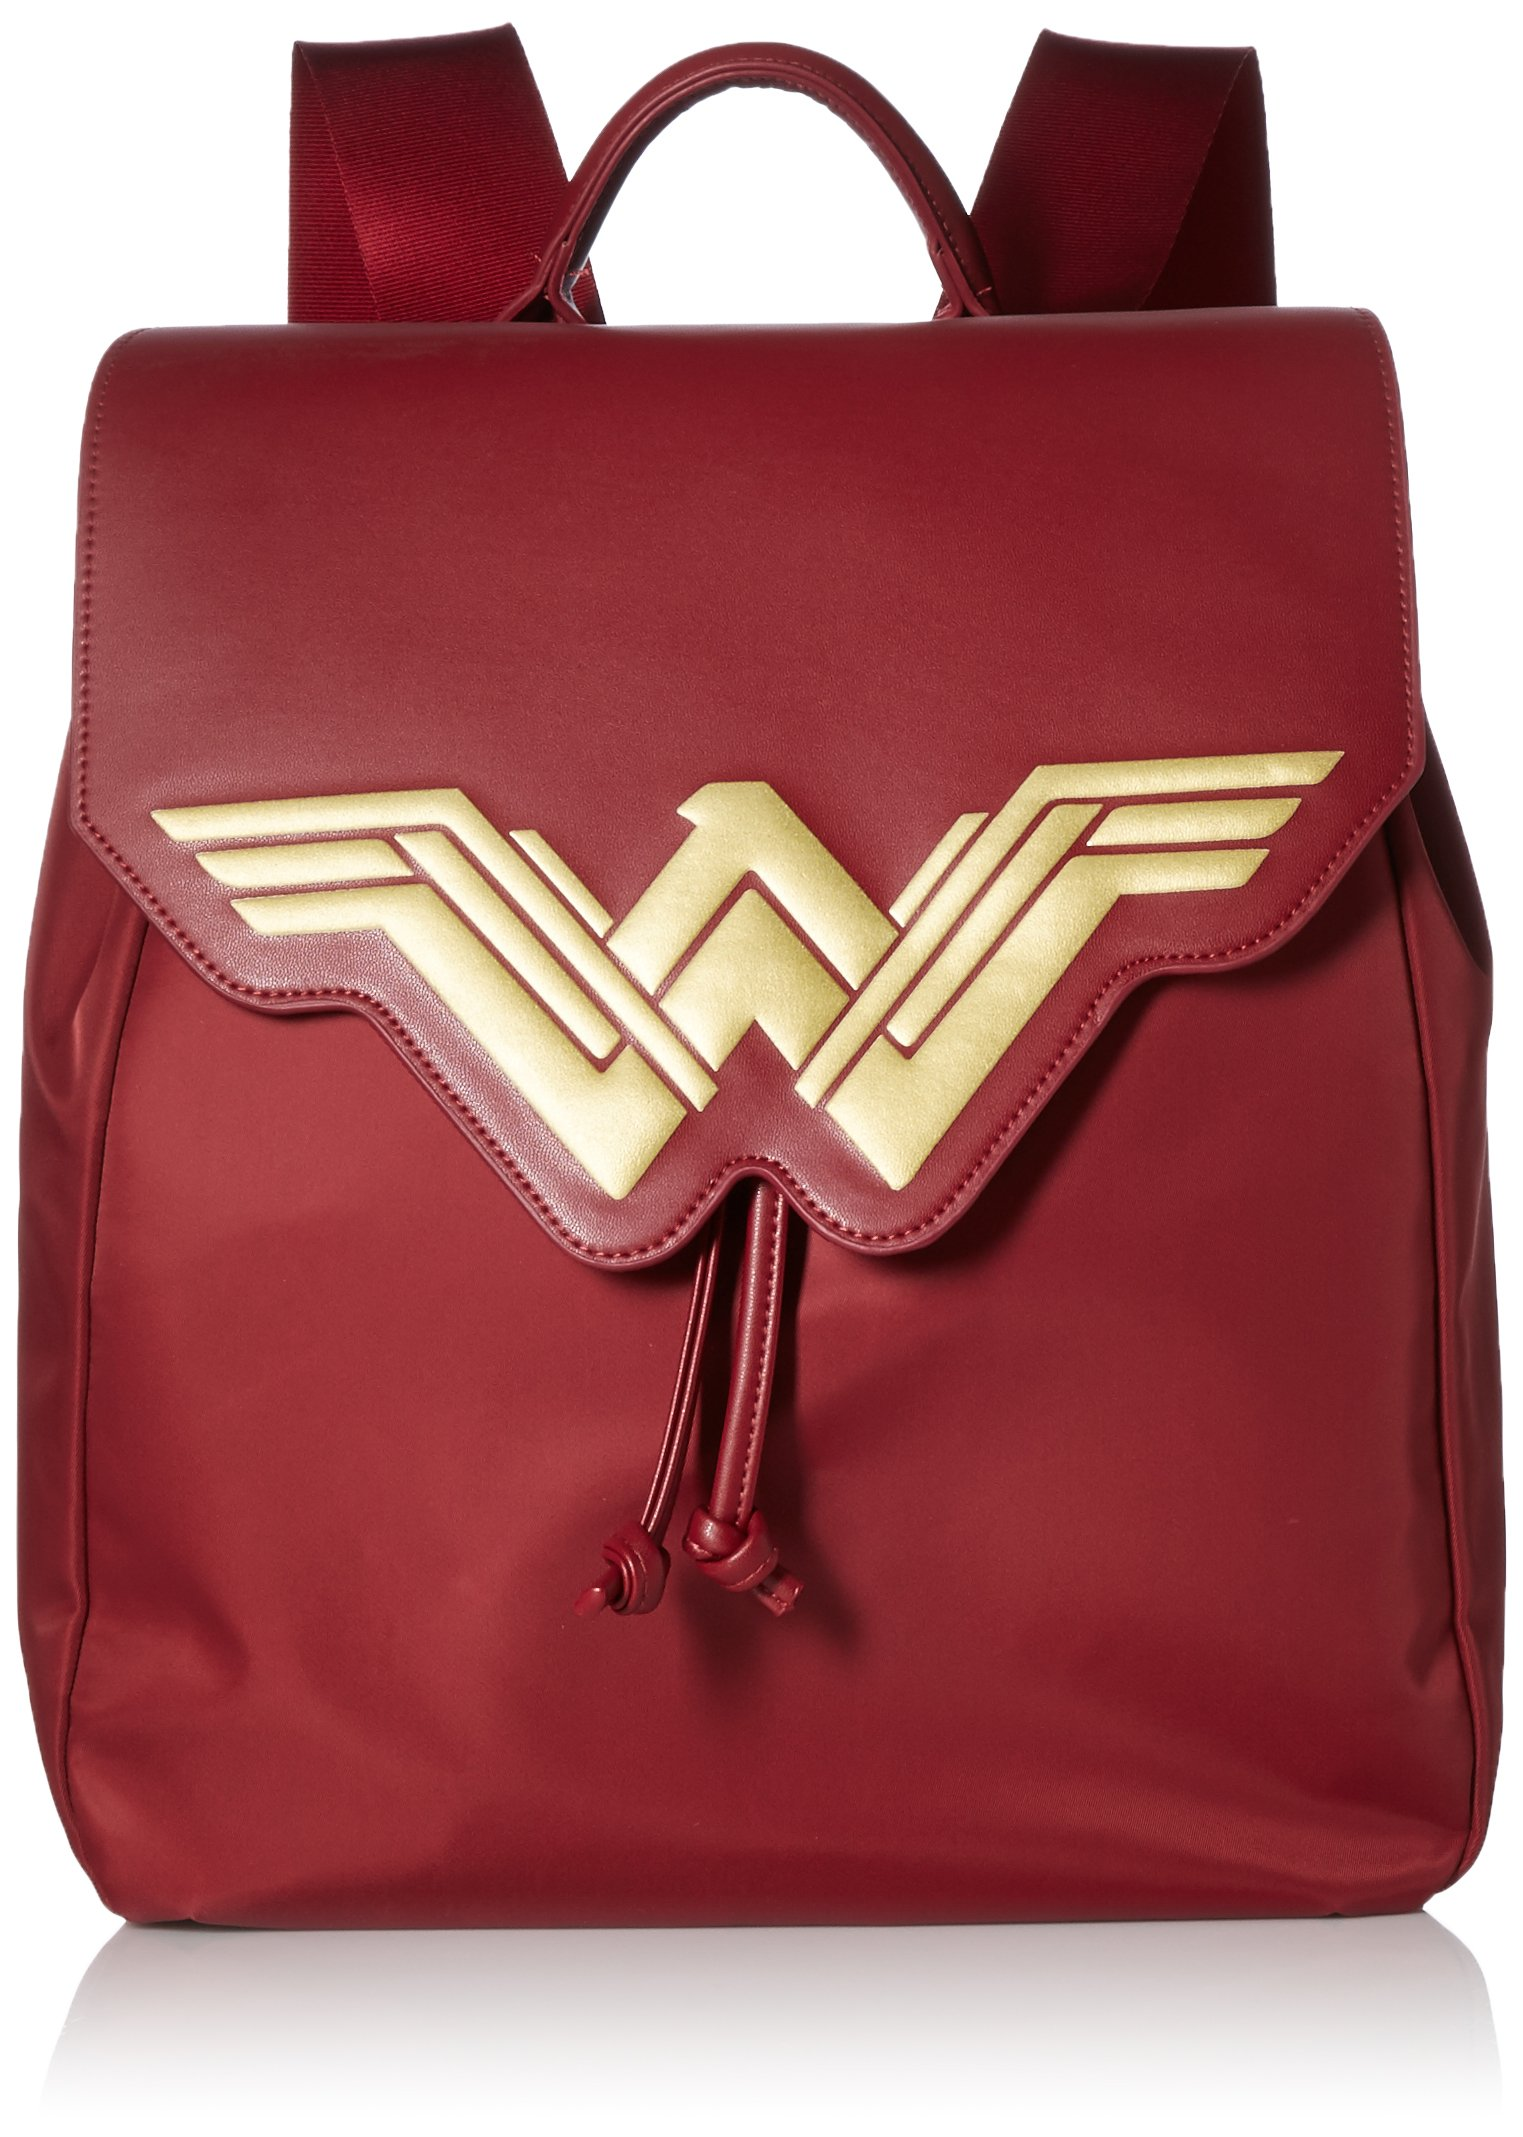 BB Designs Wonder Woman Fashion Backpack, Red